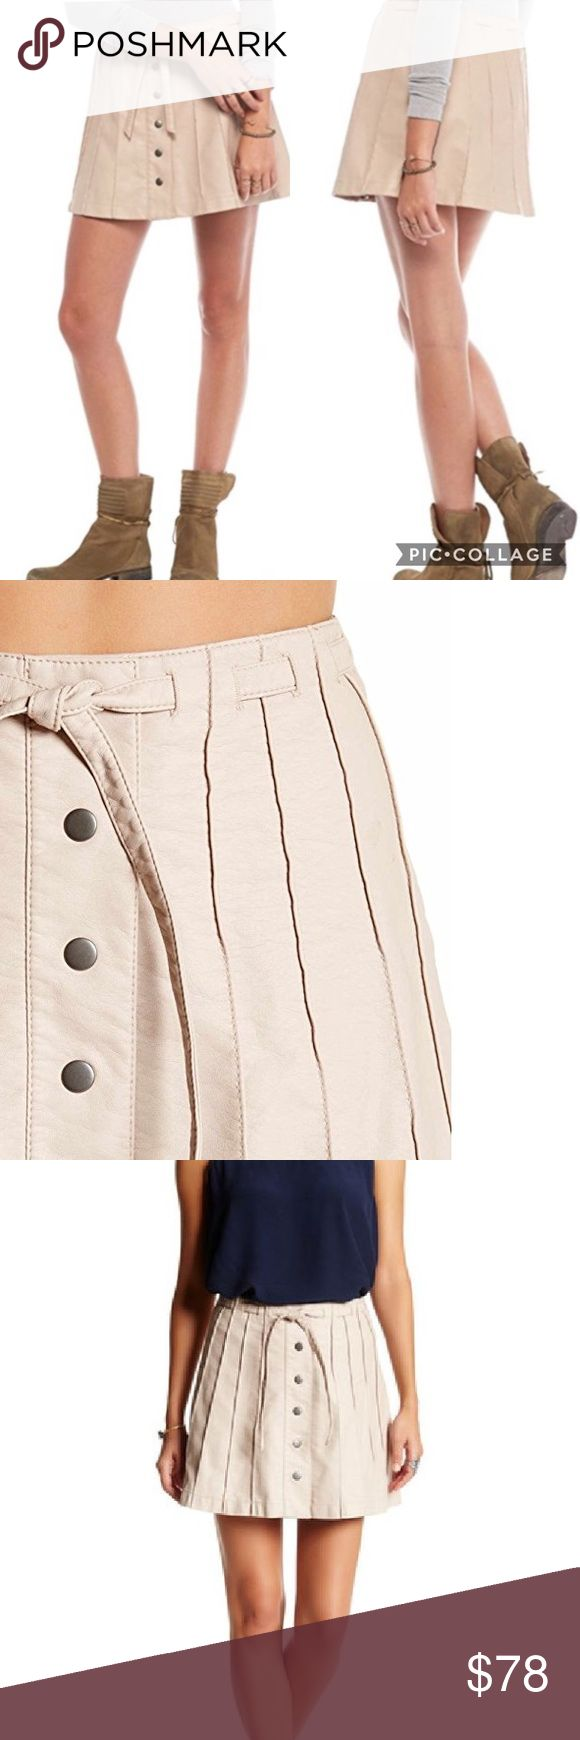 "😍 Free People Vegan Leather Mini Skirt Brand new with tags Free People faux leather miniskirt! Such a great piece, with unique details like the pleats, buttons, and tie around the waist. A neutral color that's super easy to pair with other items in your wardrobe! The color according to free people is ""pink"" but I would say it's definitely more of a nude/tan color with a pinkish-tone. Please feel free to ask your any questions before purchasing. I am open to reasonable offers and give great…"